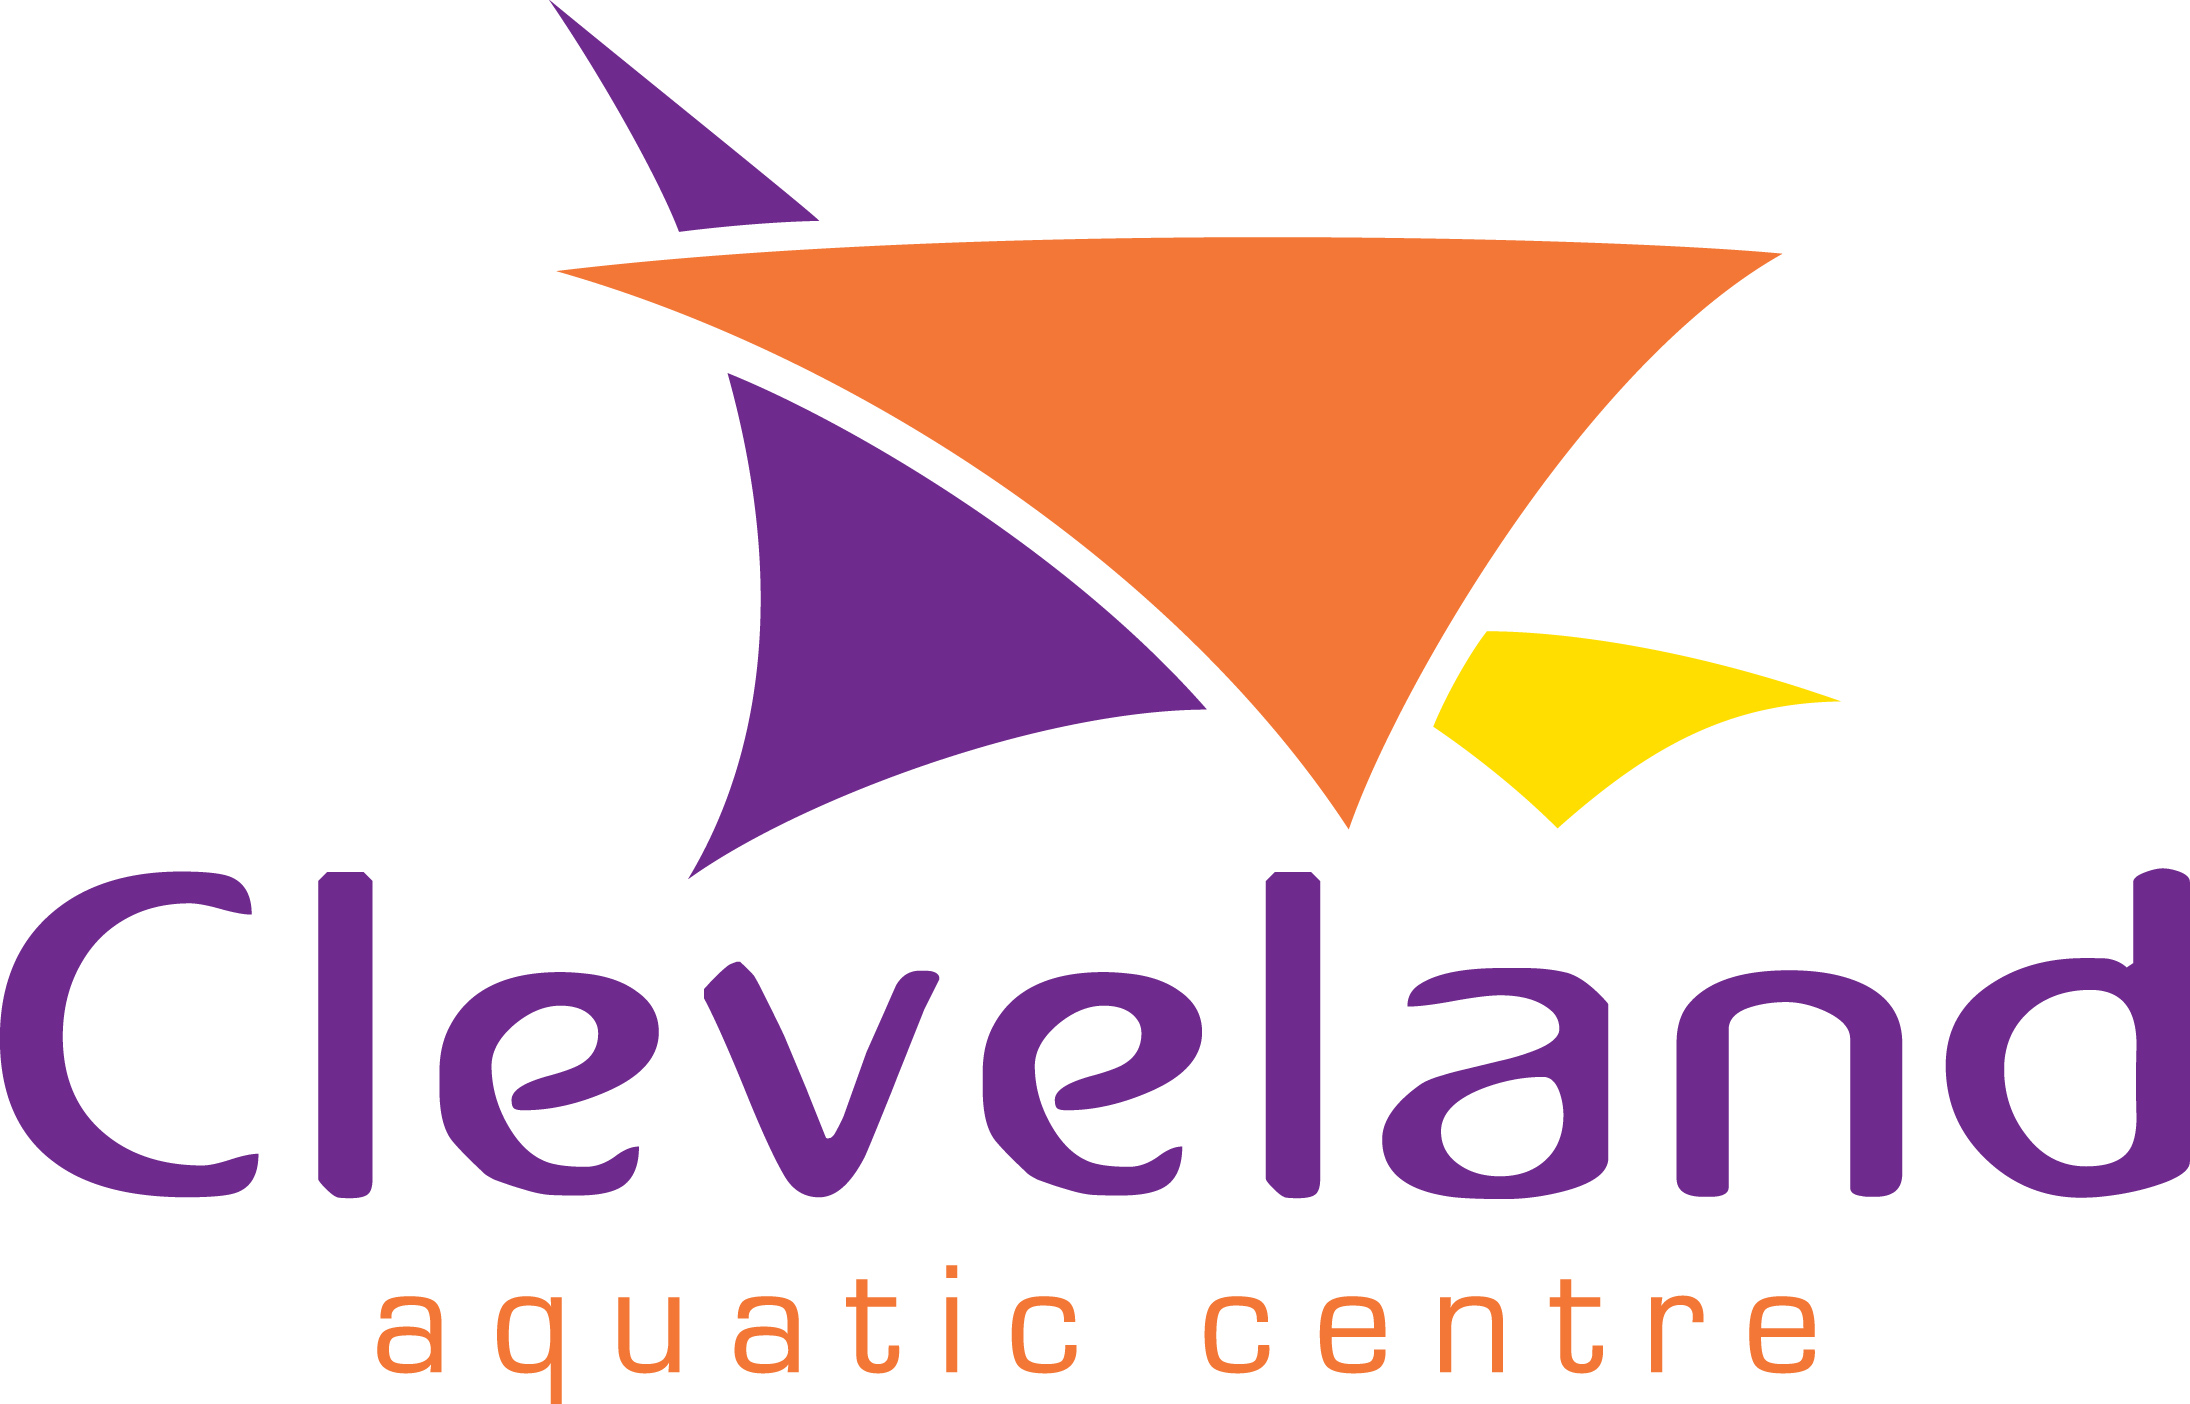 Cleveland Aquatic Centre